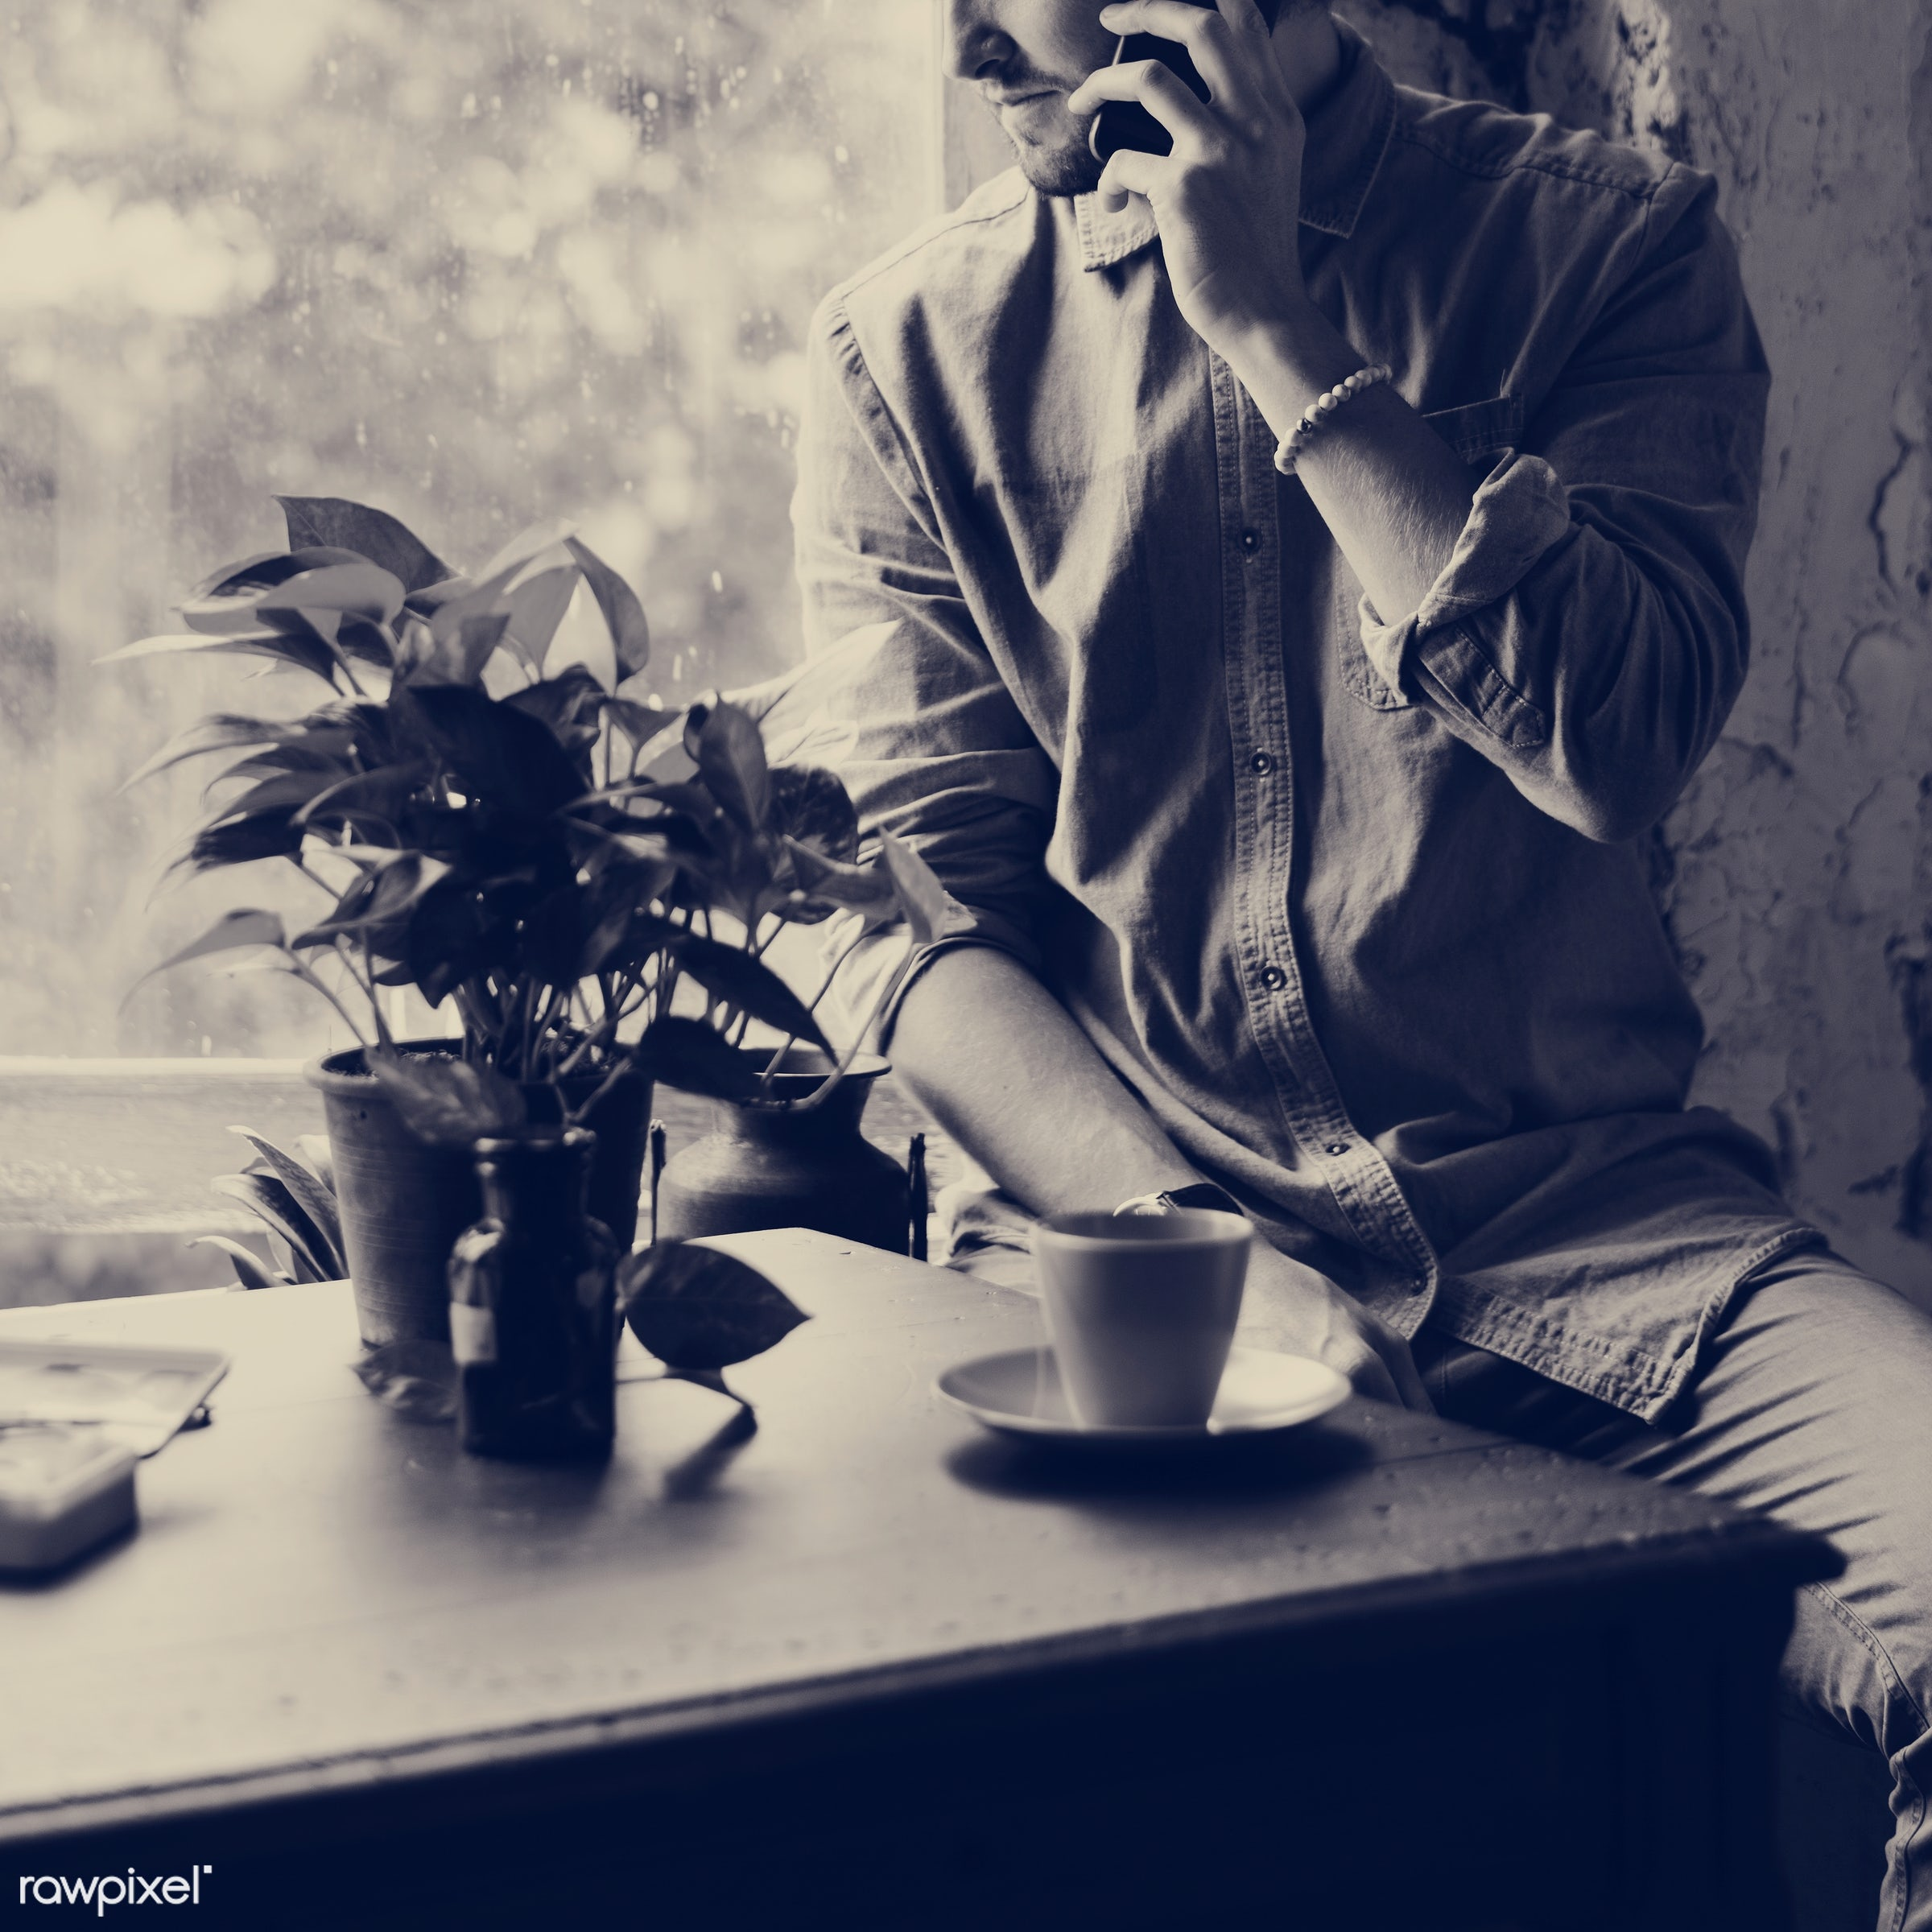 plant, cup, person, technology, workspace, workplace, people, pot, telecommunication, casual, mobile phone, men, man, vase,...